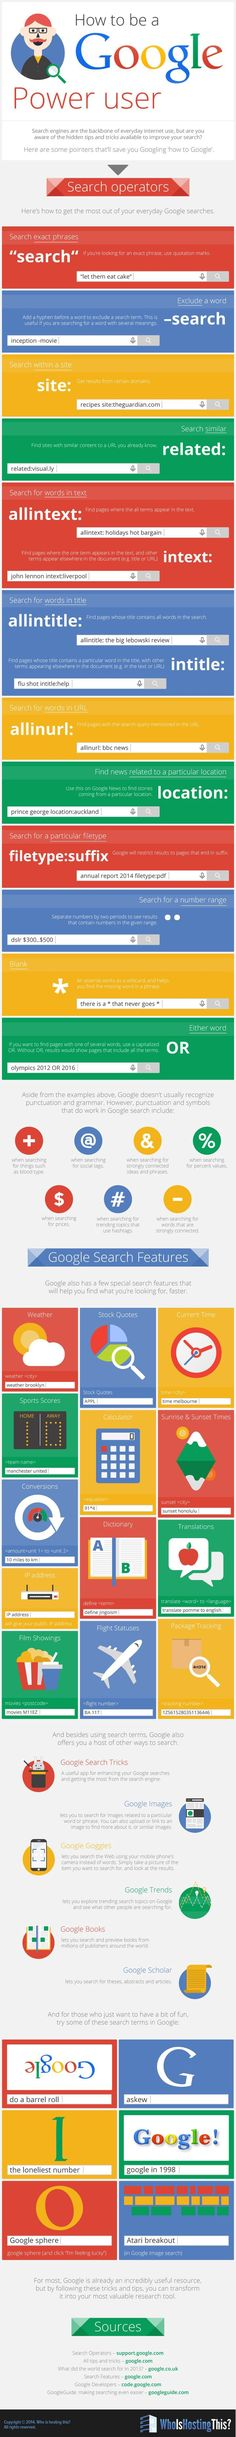 No matter how many changes Google makes to its search algorithm, you can rest assured the majority of people will continue to consider the…